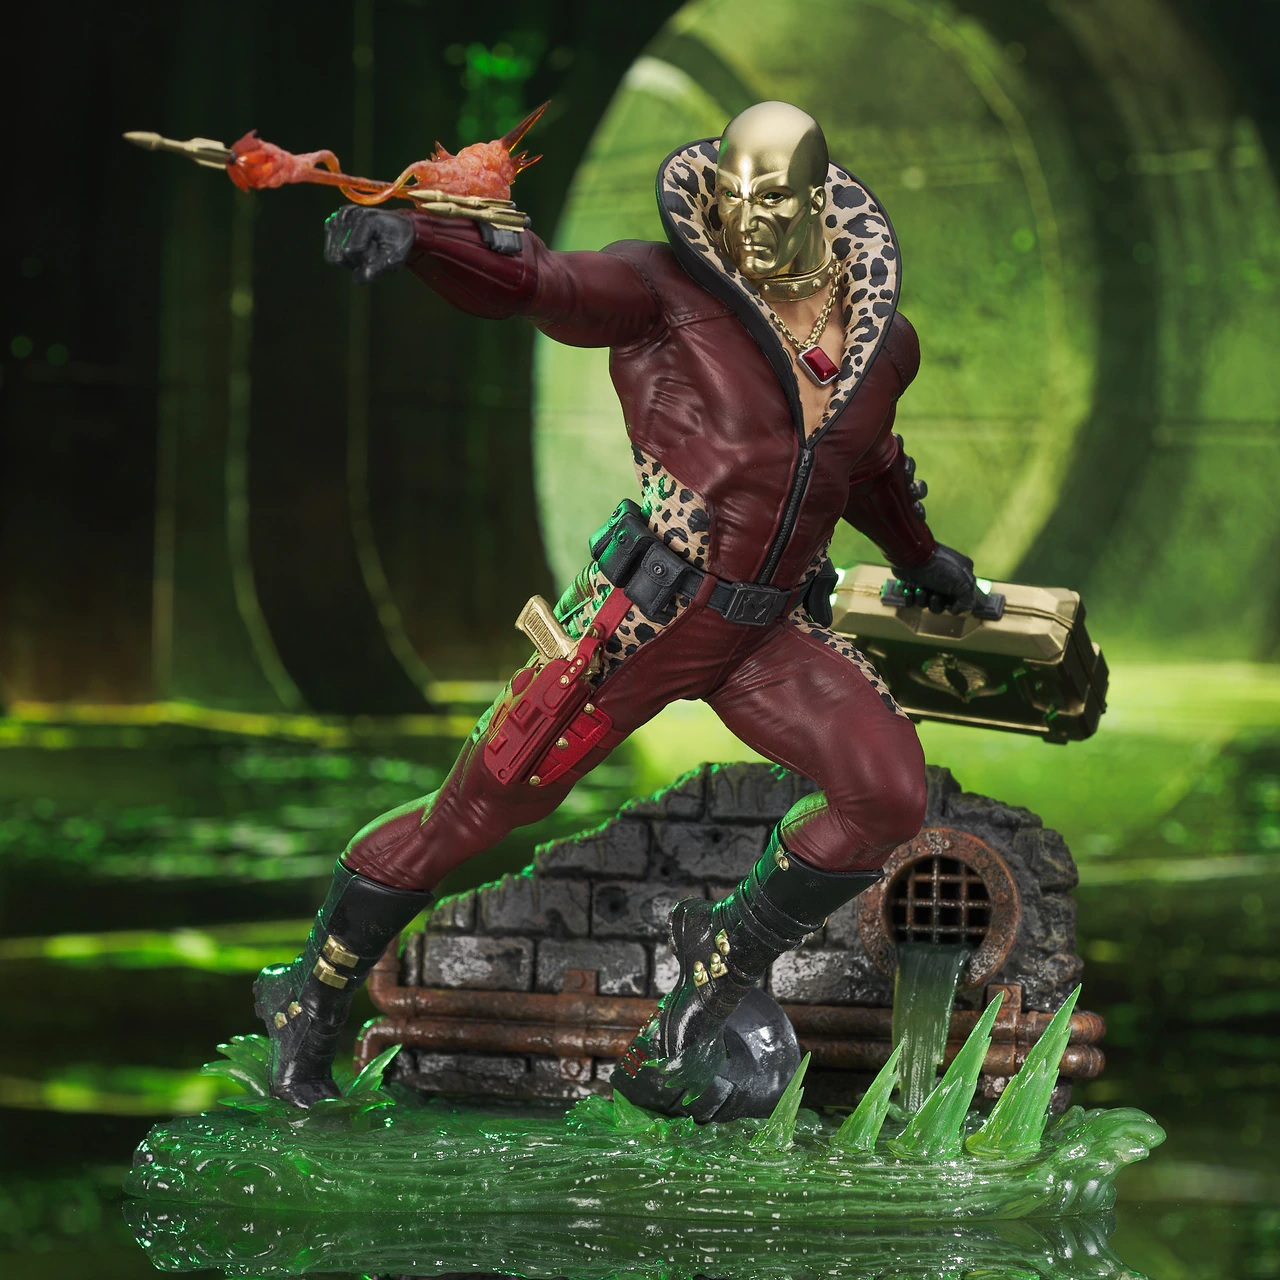 Pre-Order Diamond Gallery GI Joe Destro Profit Director Statue